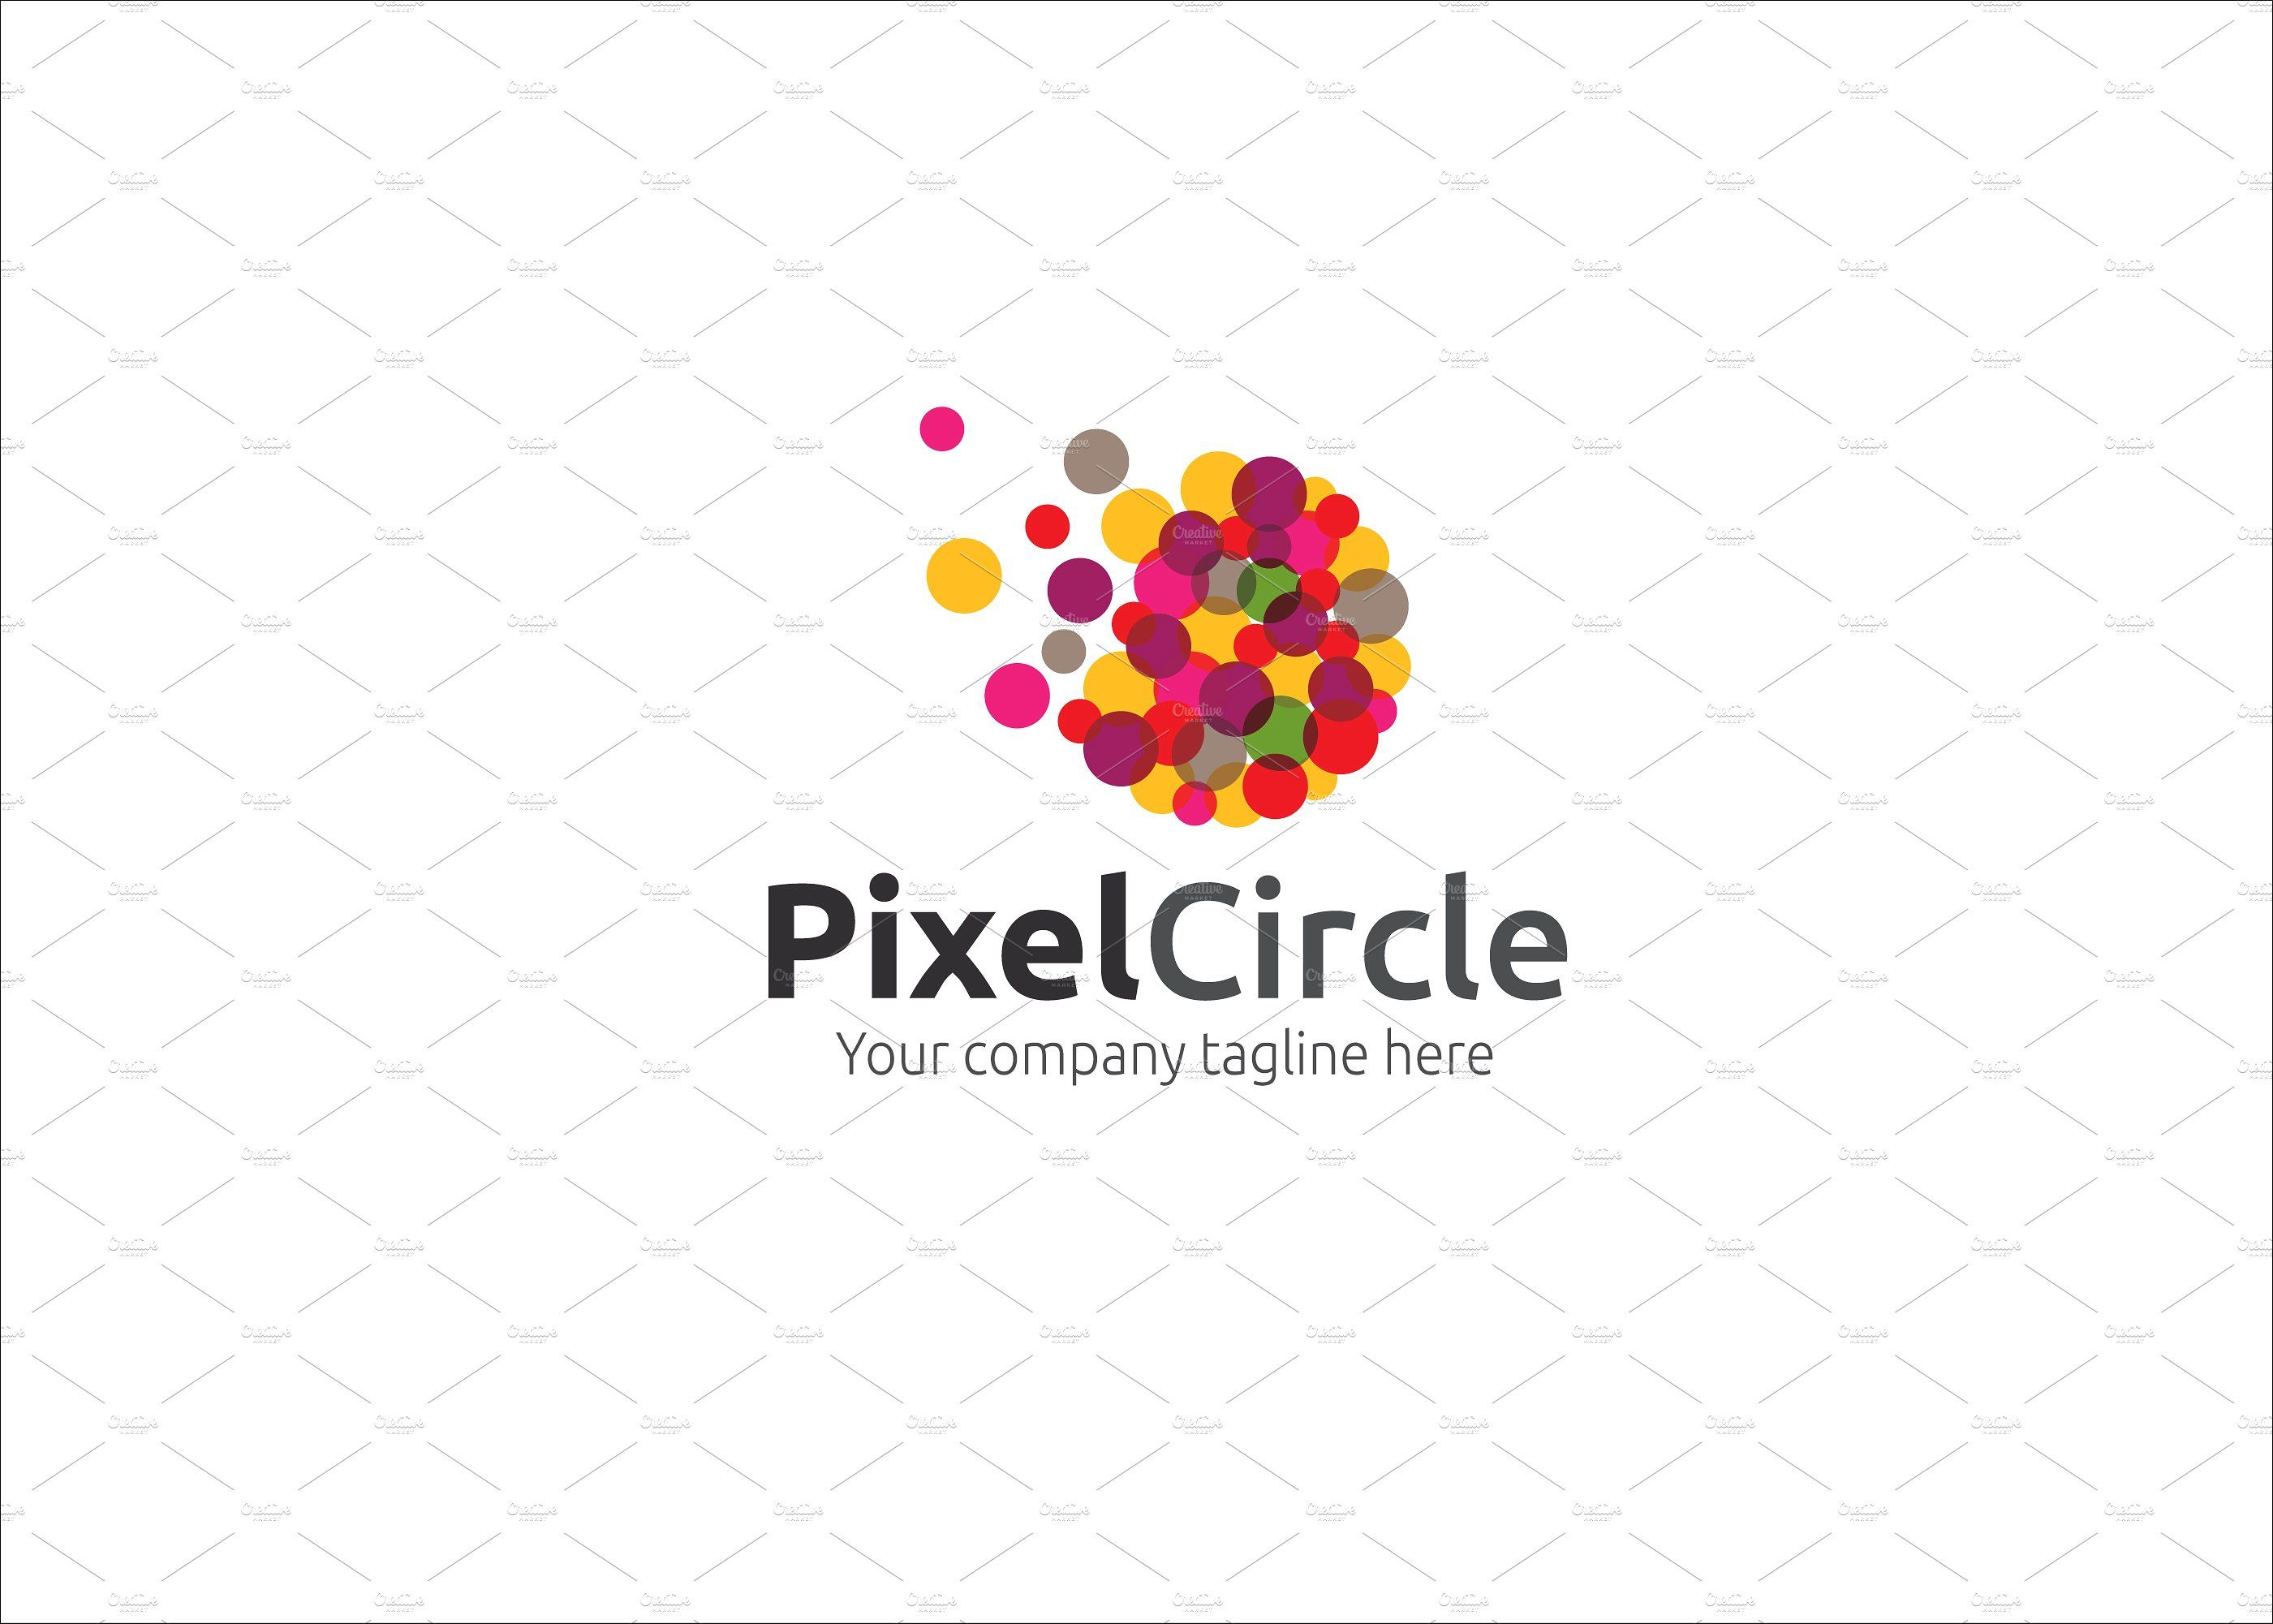 Pixel Circle Logo Circle logos, Pixel circle, Business